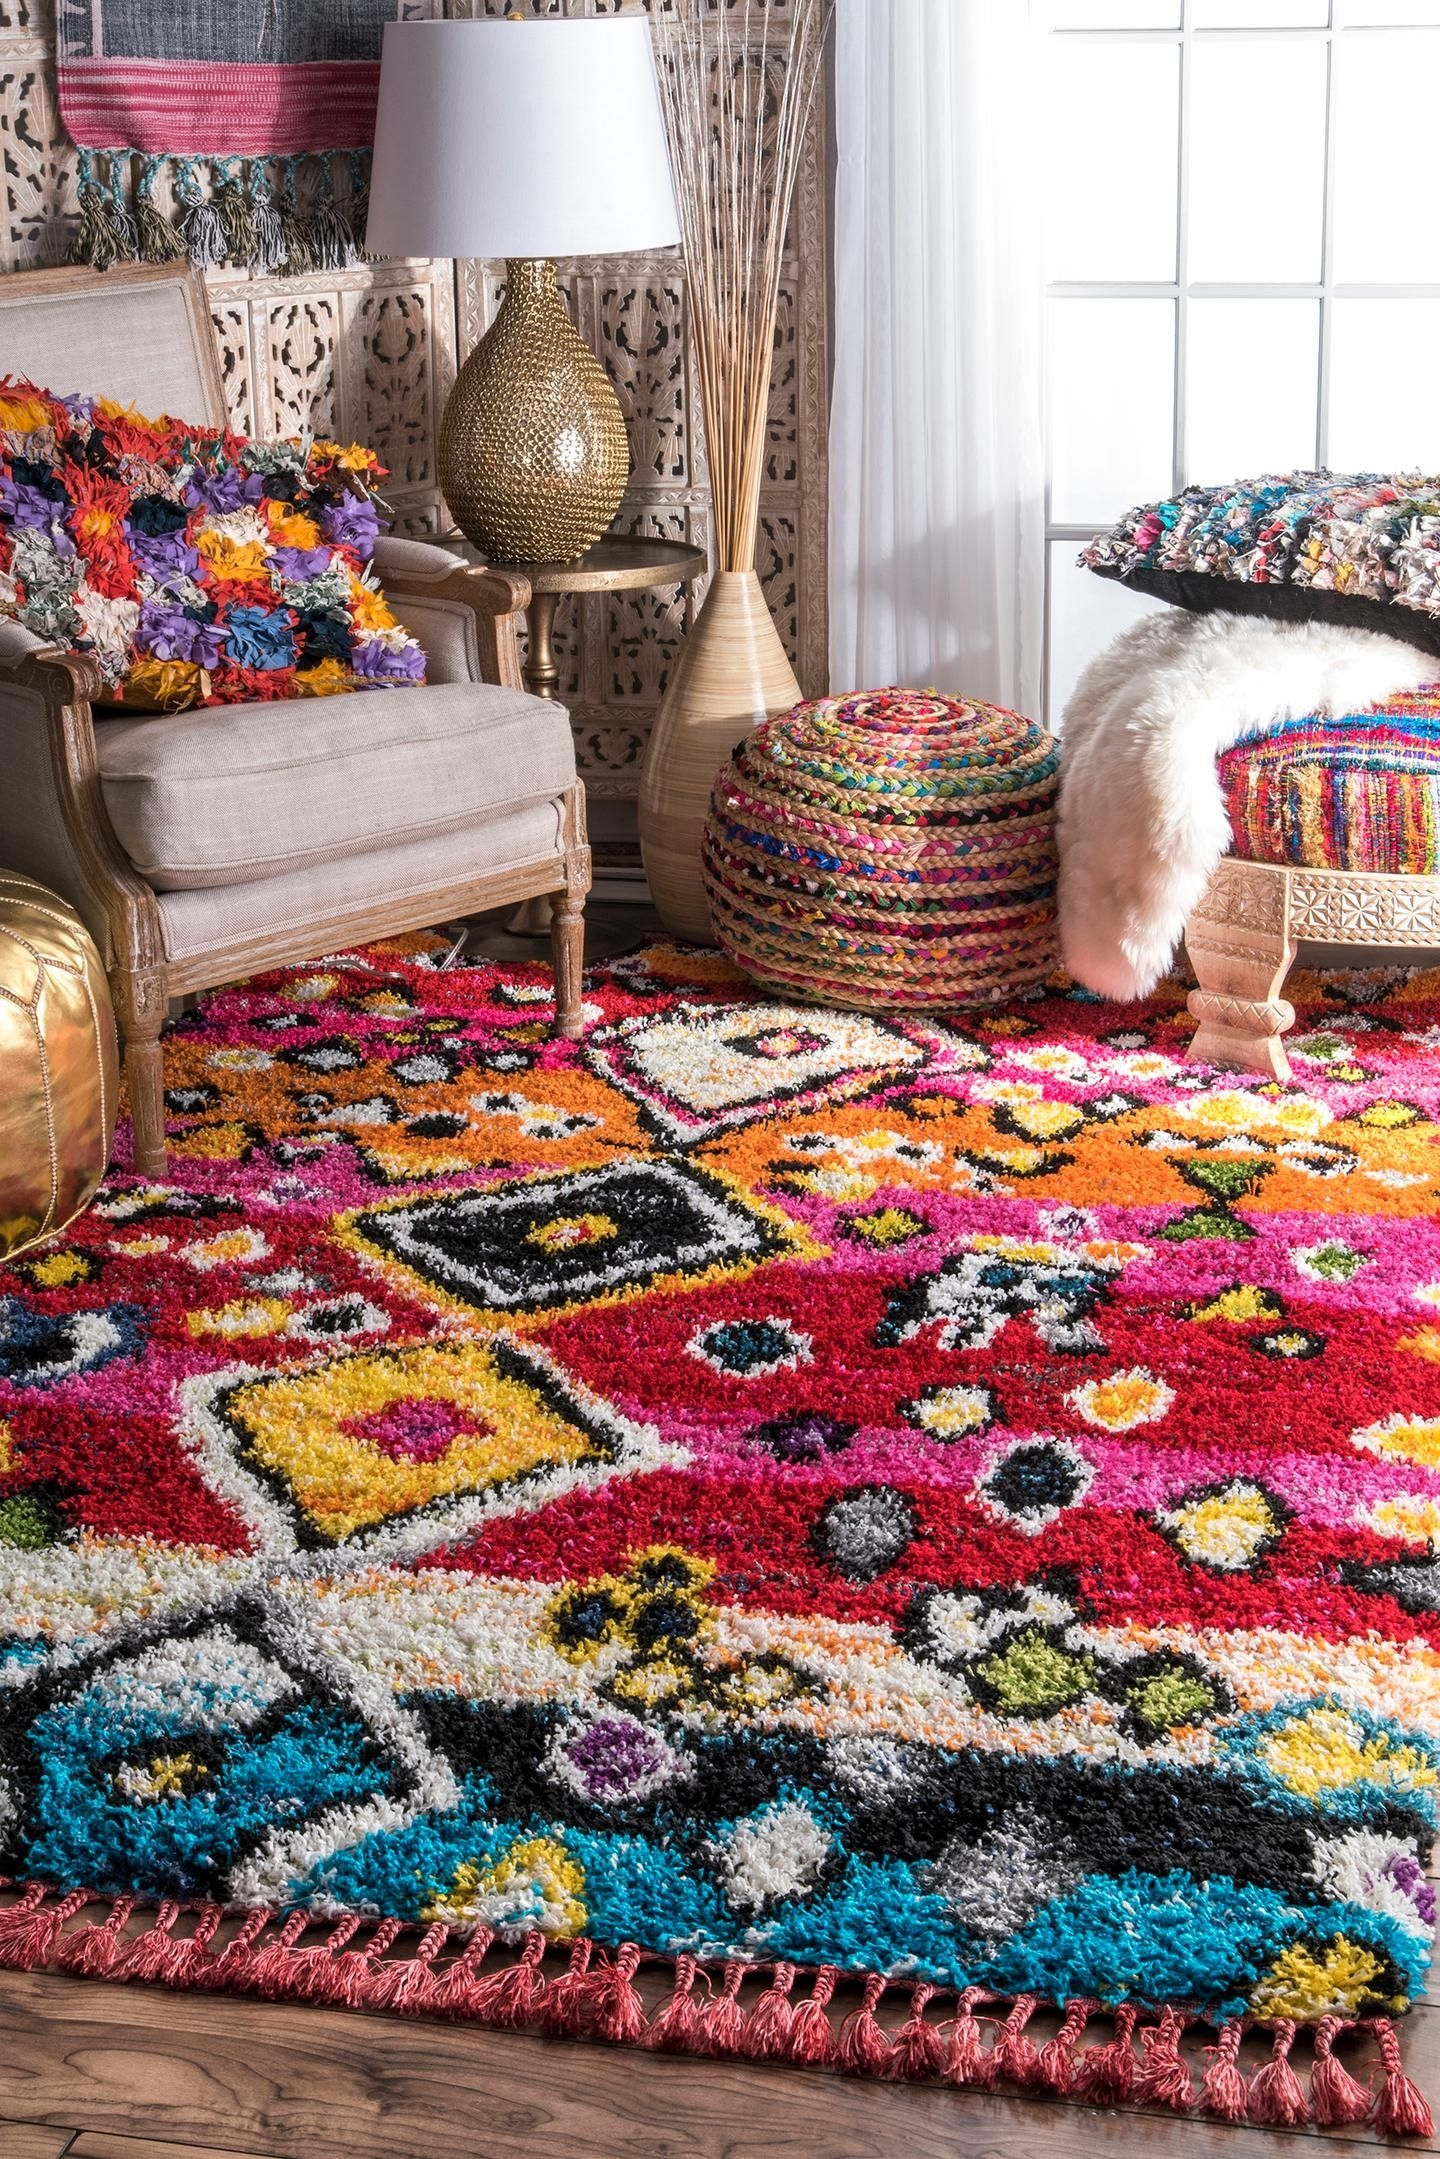 Magnificent Home Decor Ideas Living Room Modern Boho area Rug with Plum Accents On Delightful Nuloom Alane Moroccan Tassel Shaggy area Rug On Home Decor Ideas Living Room Modern Boho area Rug with Plum Accents